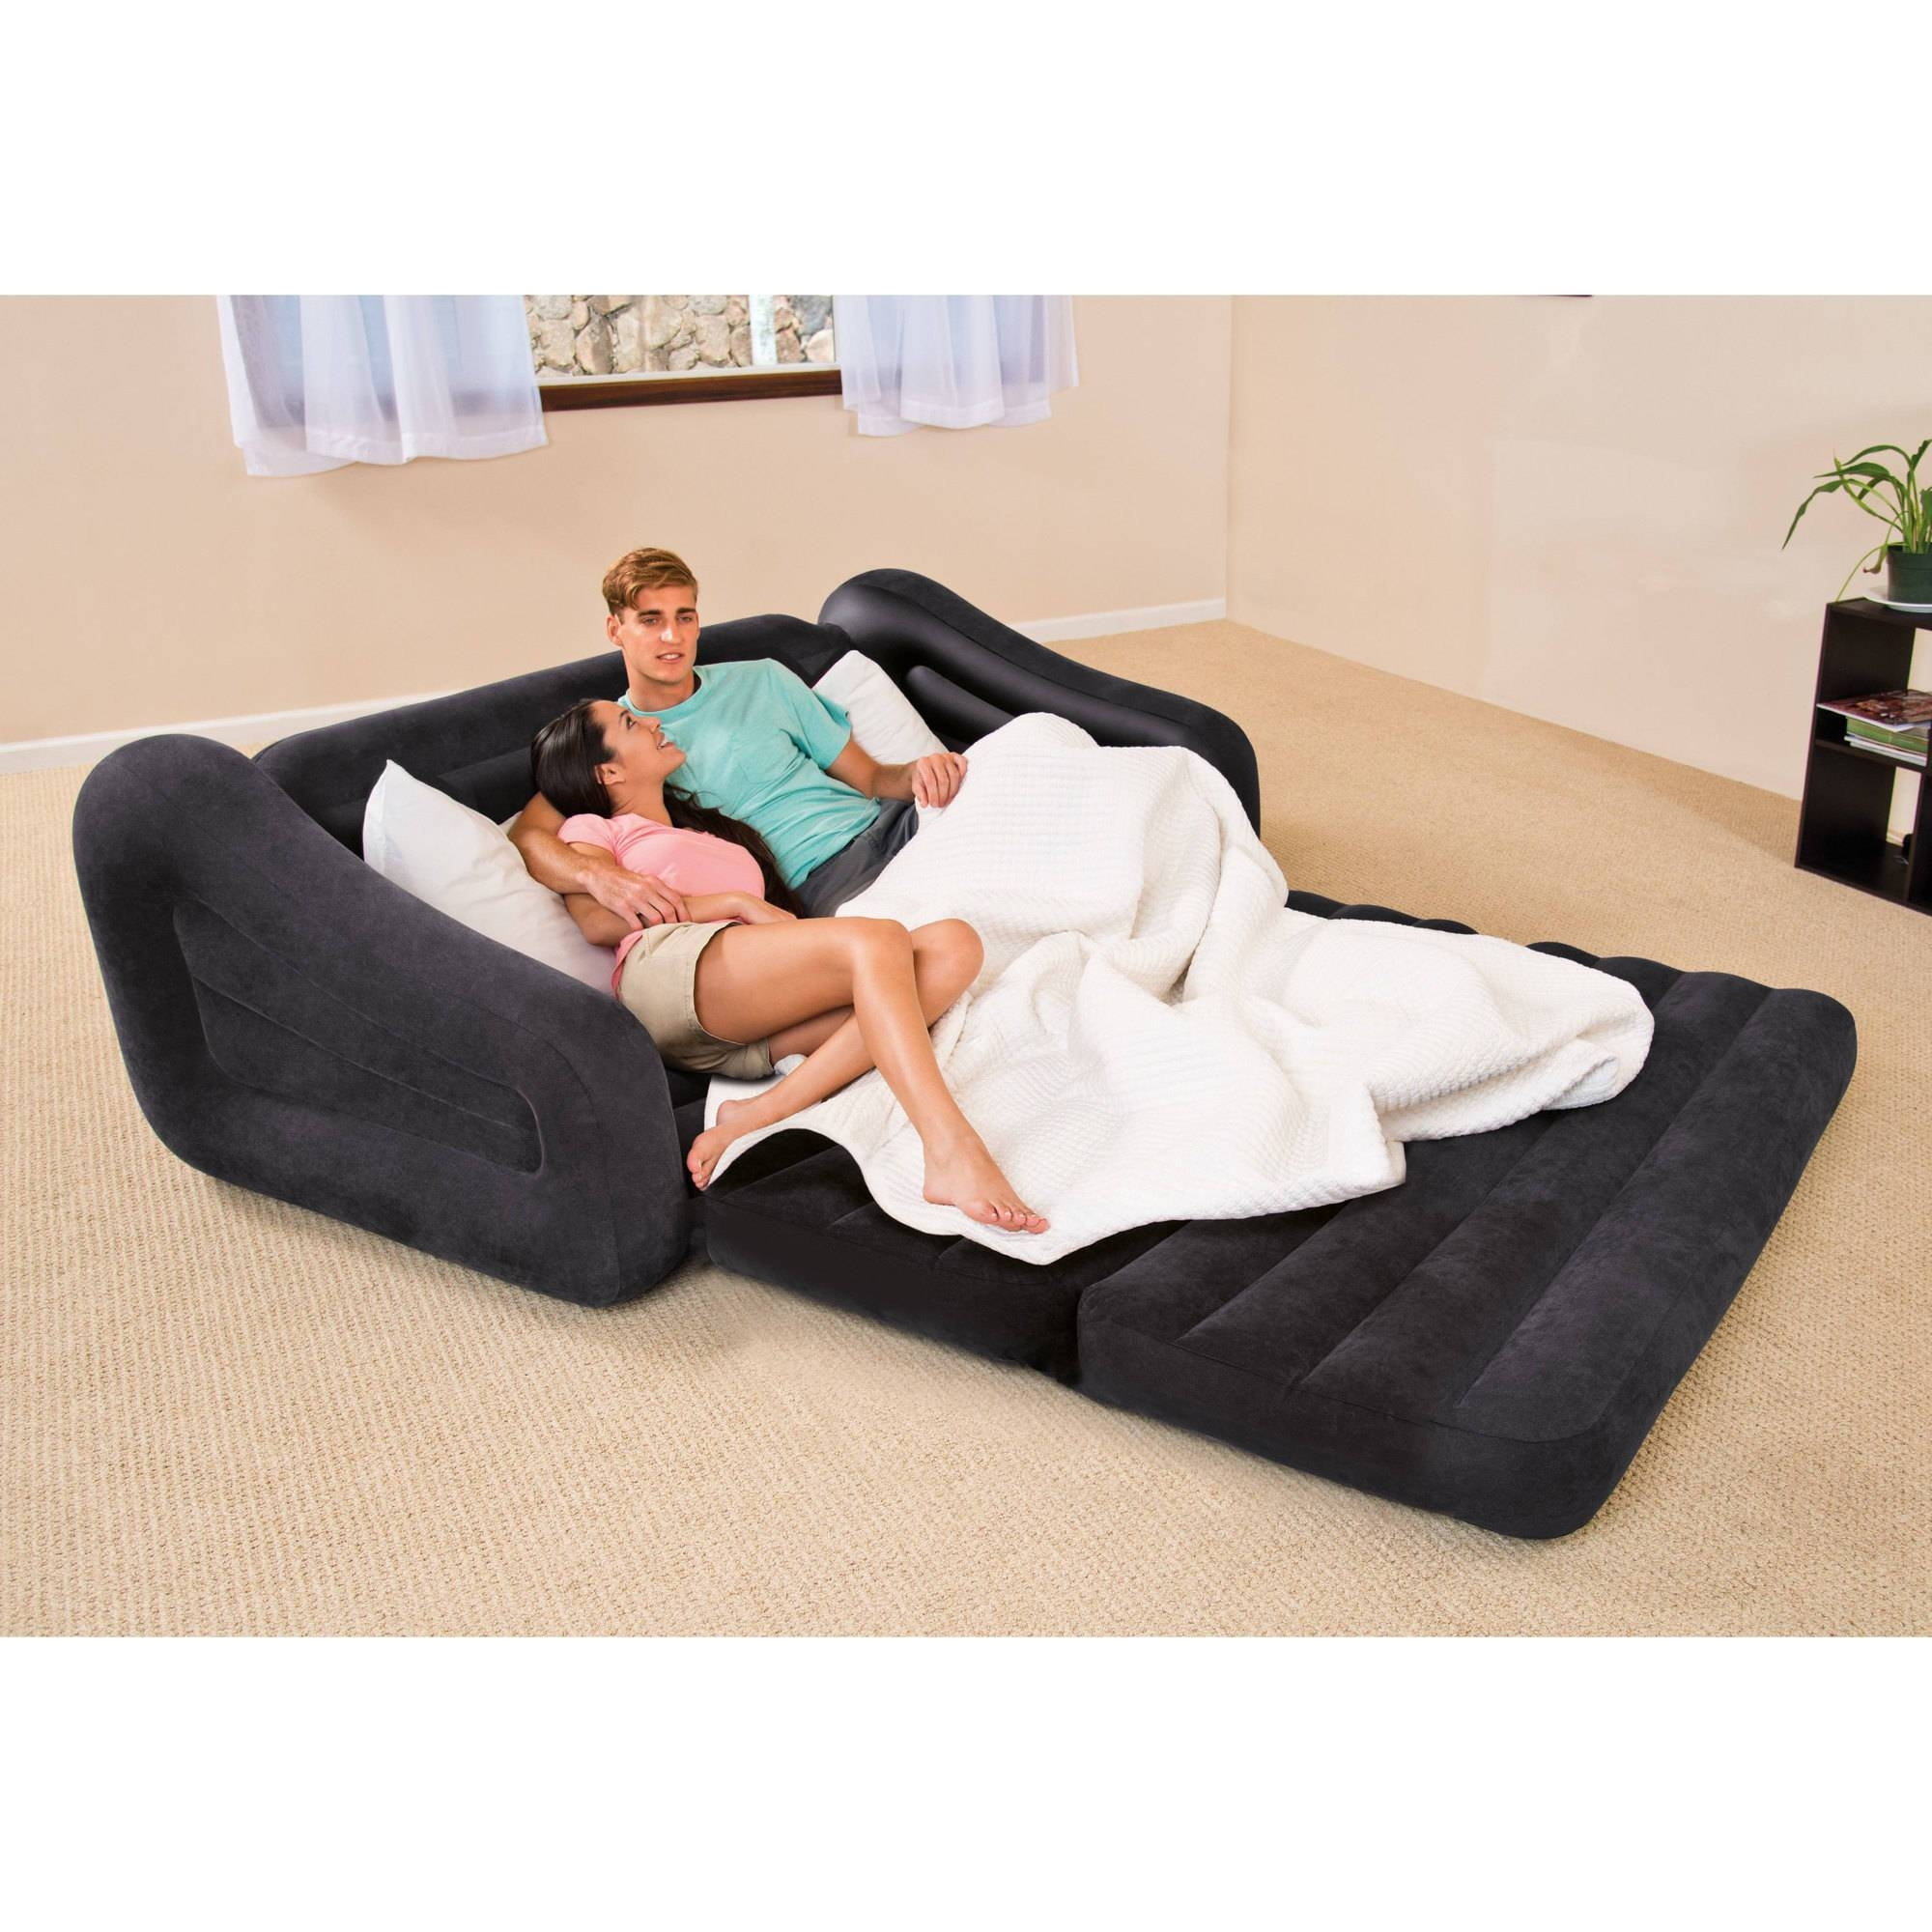 Intex Queen Inflatable Pull Out Sofa Bed - Walmart in Intex Air Couches (Image 13 of 15)